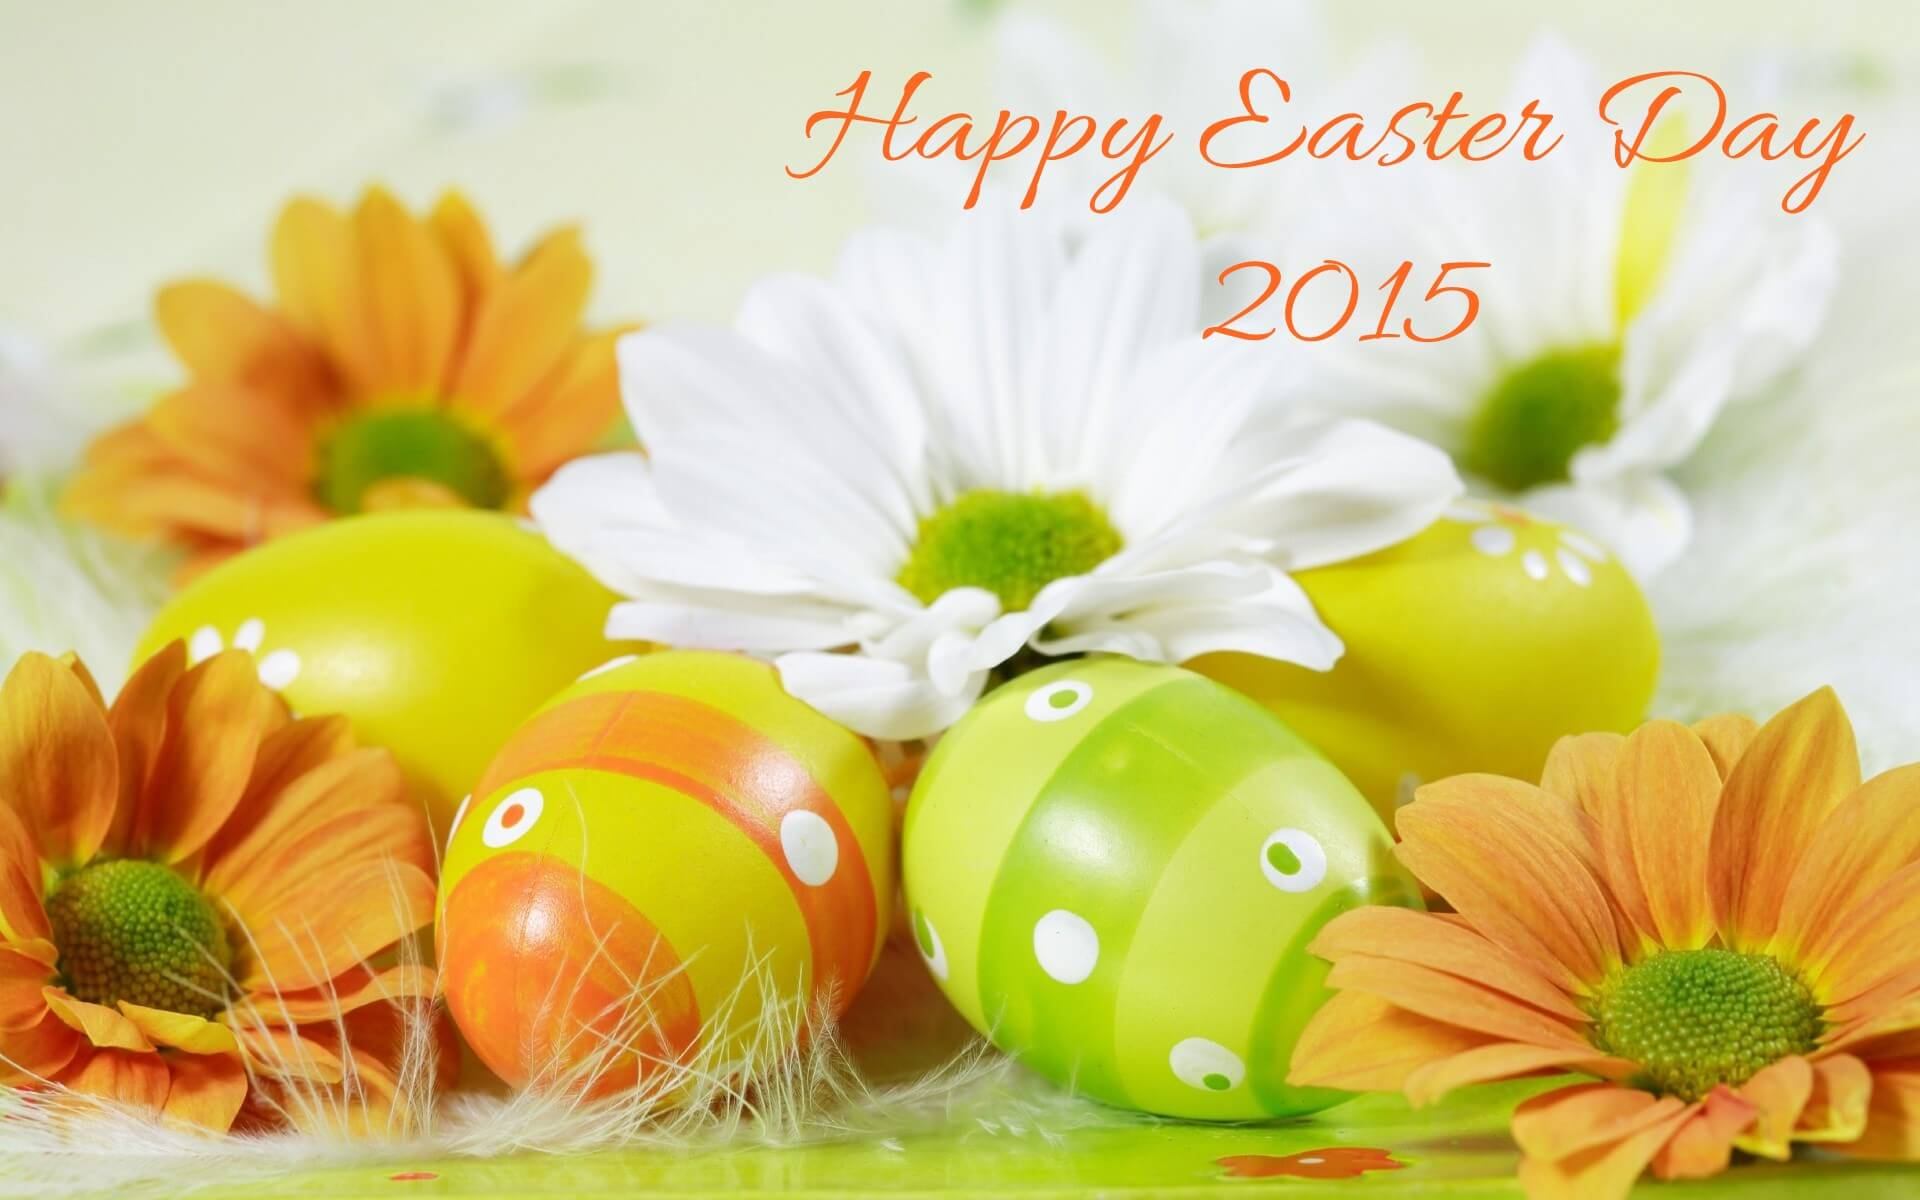 Happy-Easter-Day-2015_Wallpapers